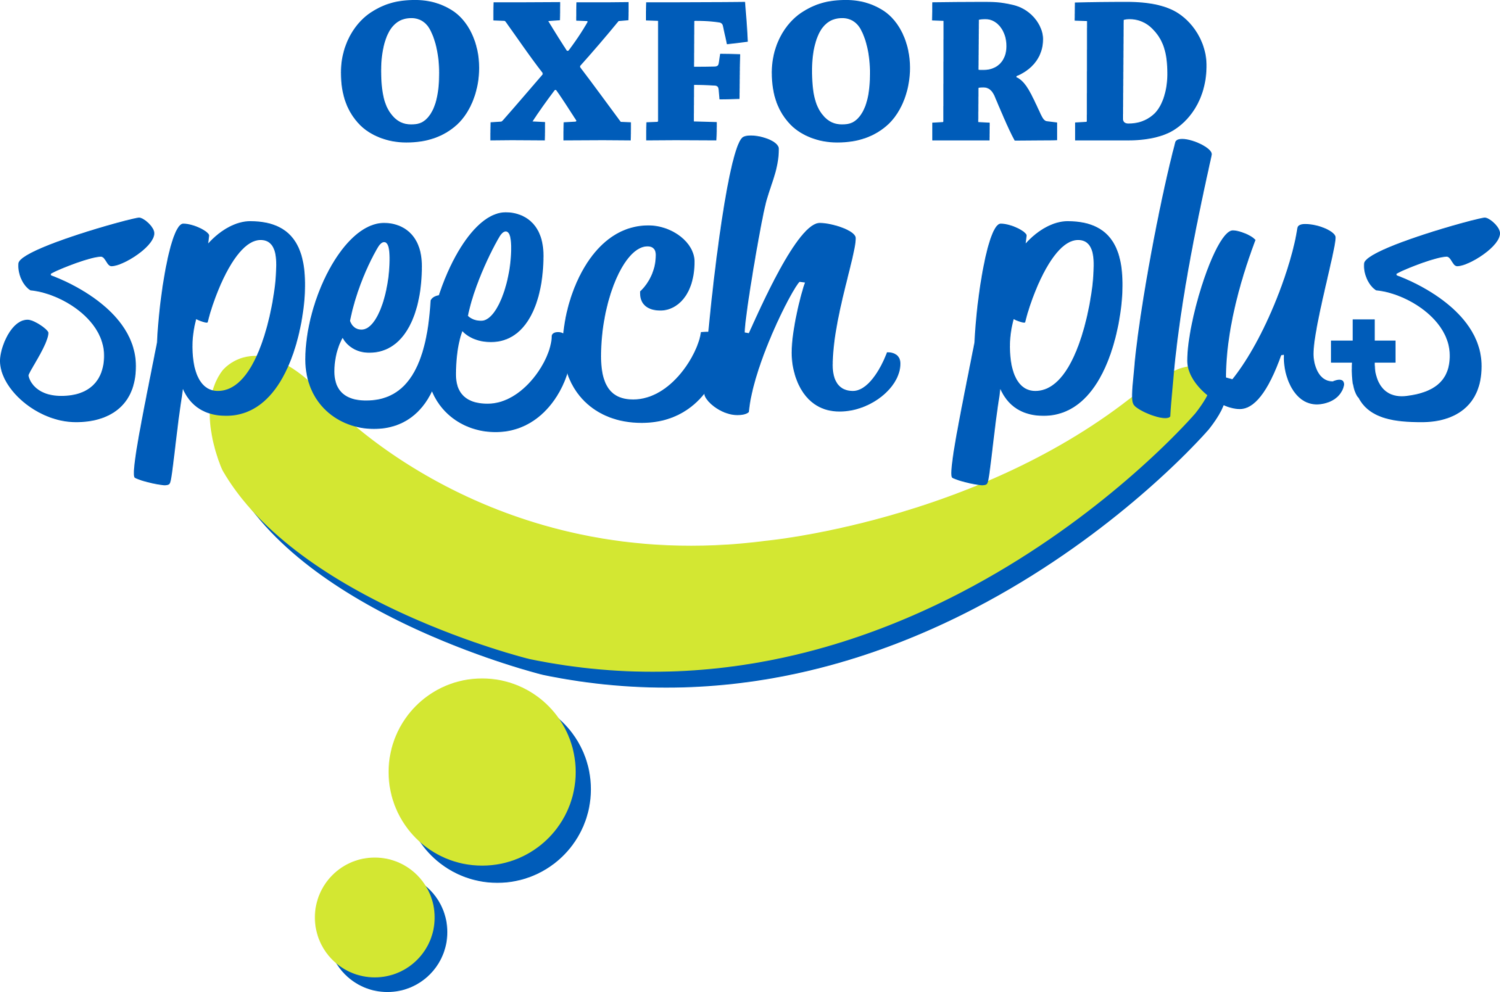 Oxford Speech Plus